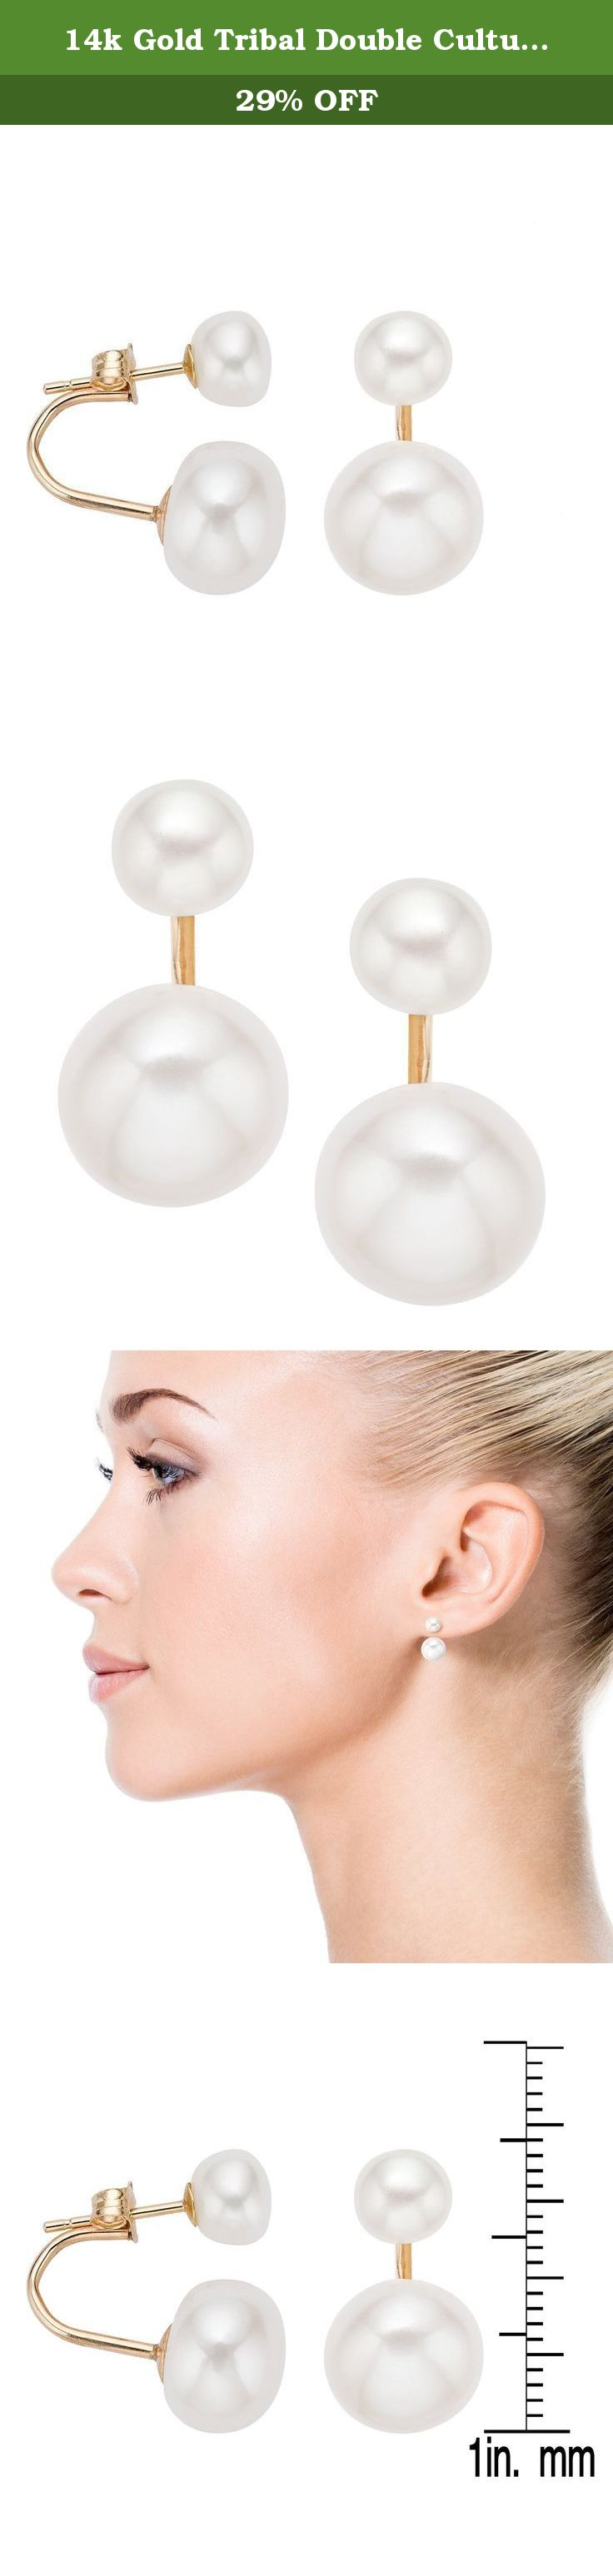 14k Gold Tribal Double Cultured Pearl Earrings with Gift Box. Each of these earrings features a brilliant freshwater pearl with a tribal fashion design. The earrings are available in 14-karat yellow.